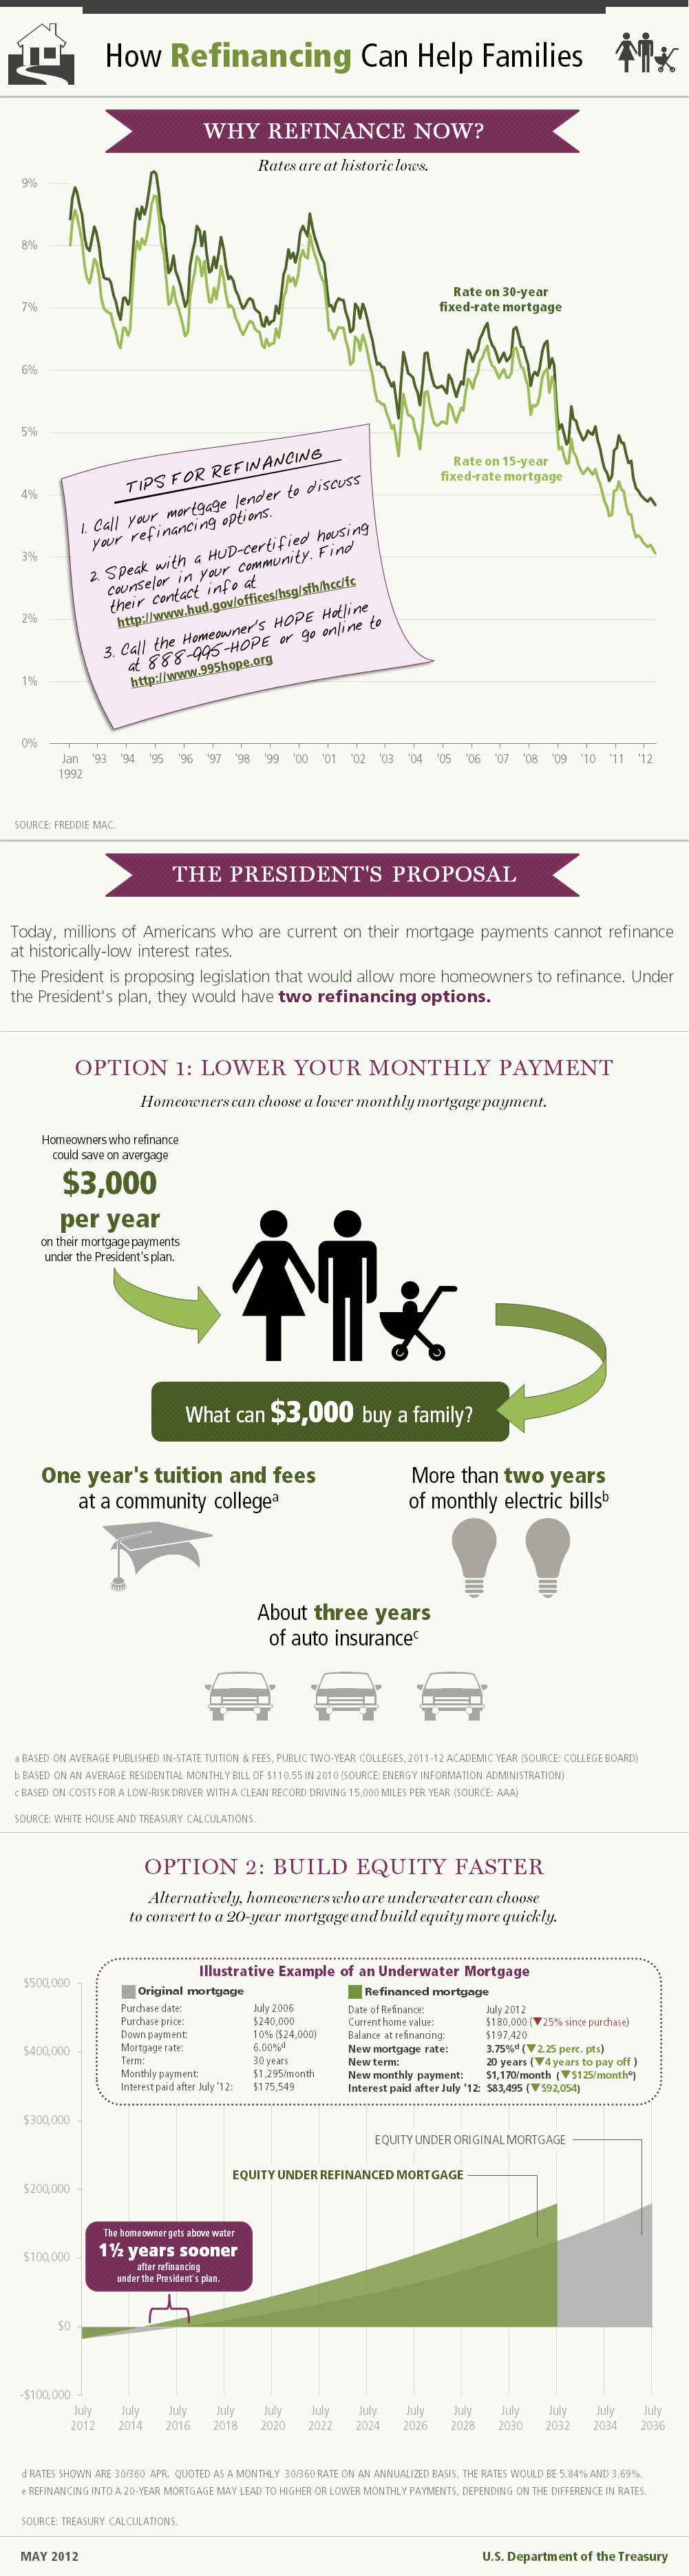 How refinancing helps families